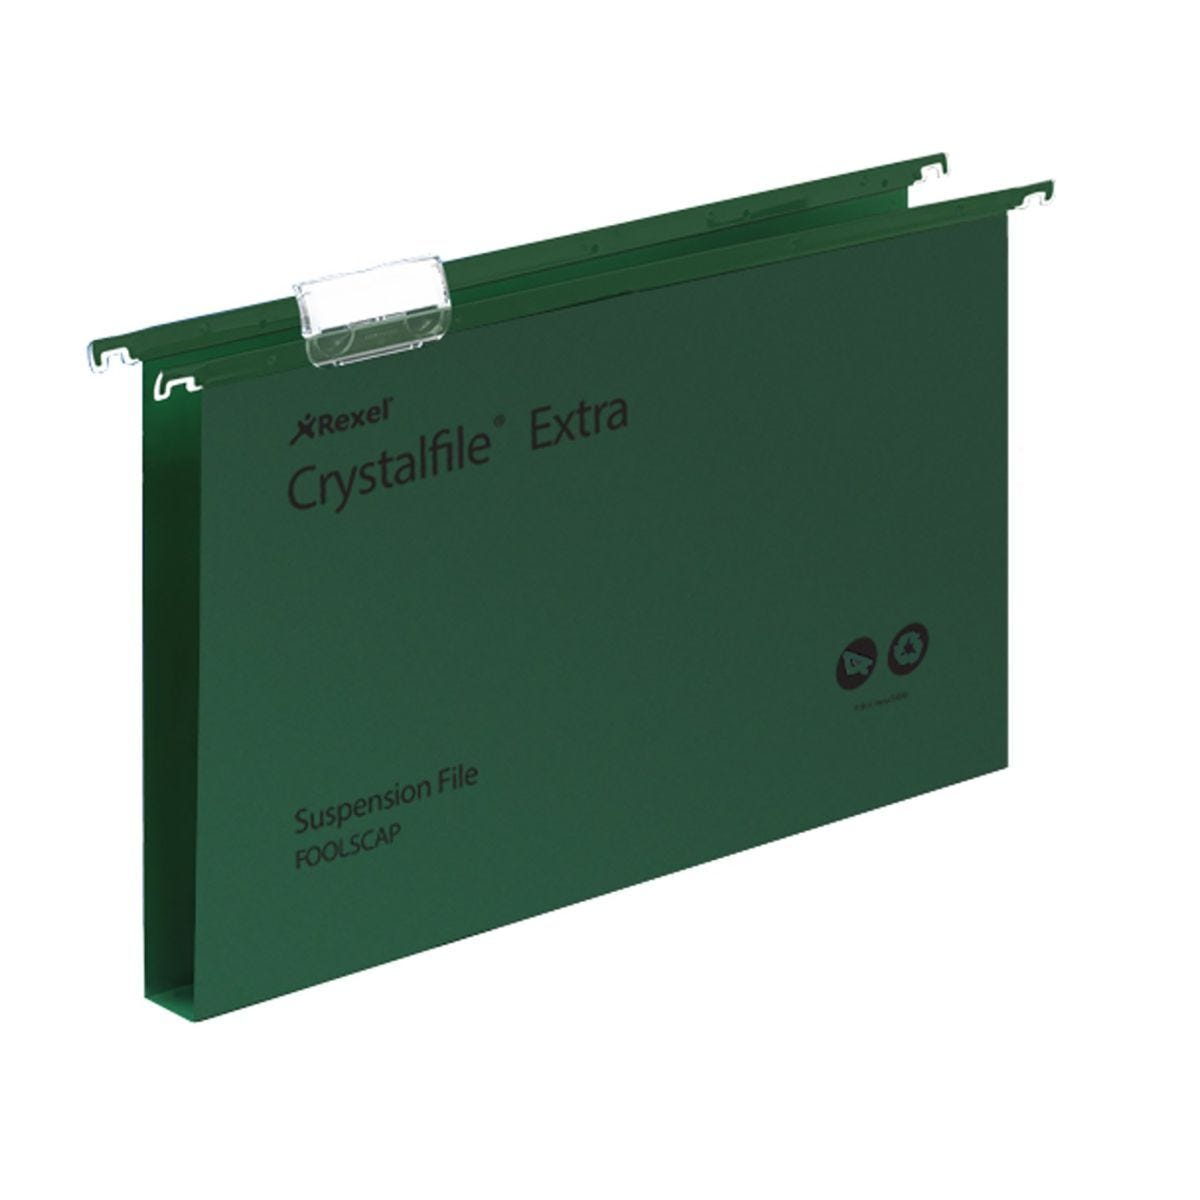 Rexel Crystalfile Extra Foolscap Suspension File 30mm Pack of 25 Green